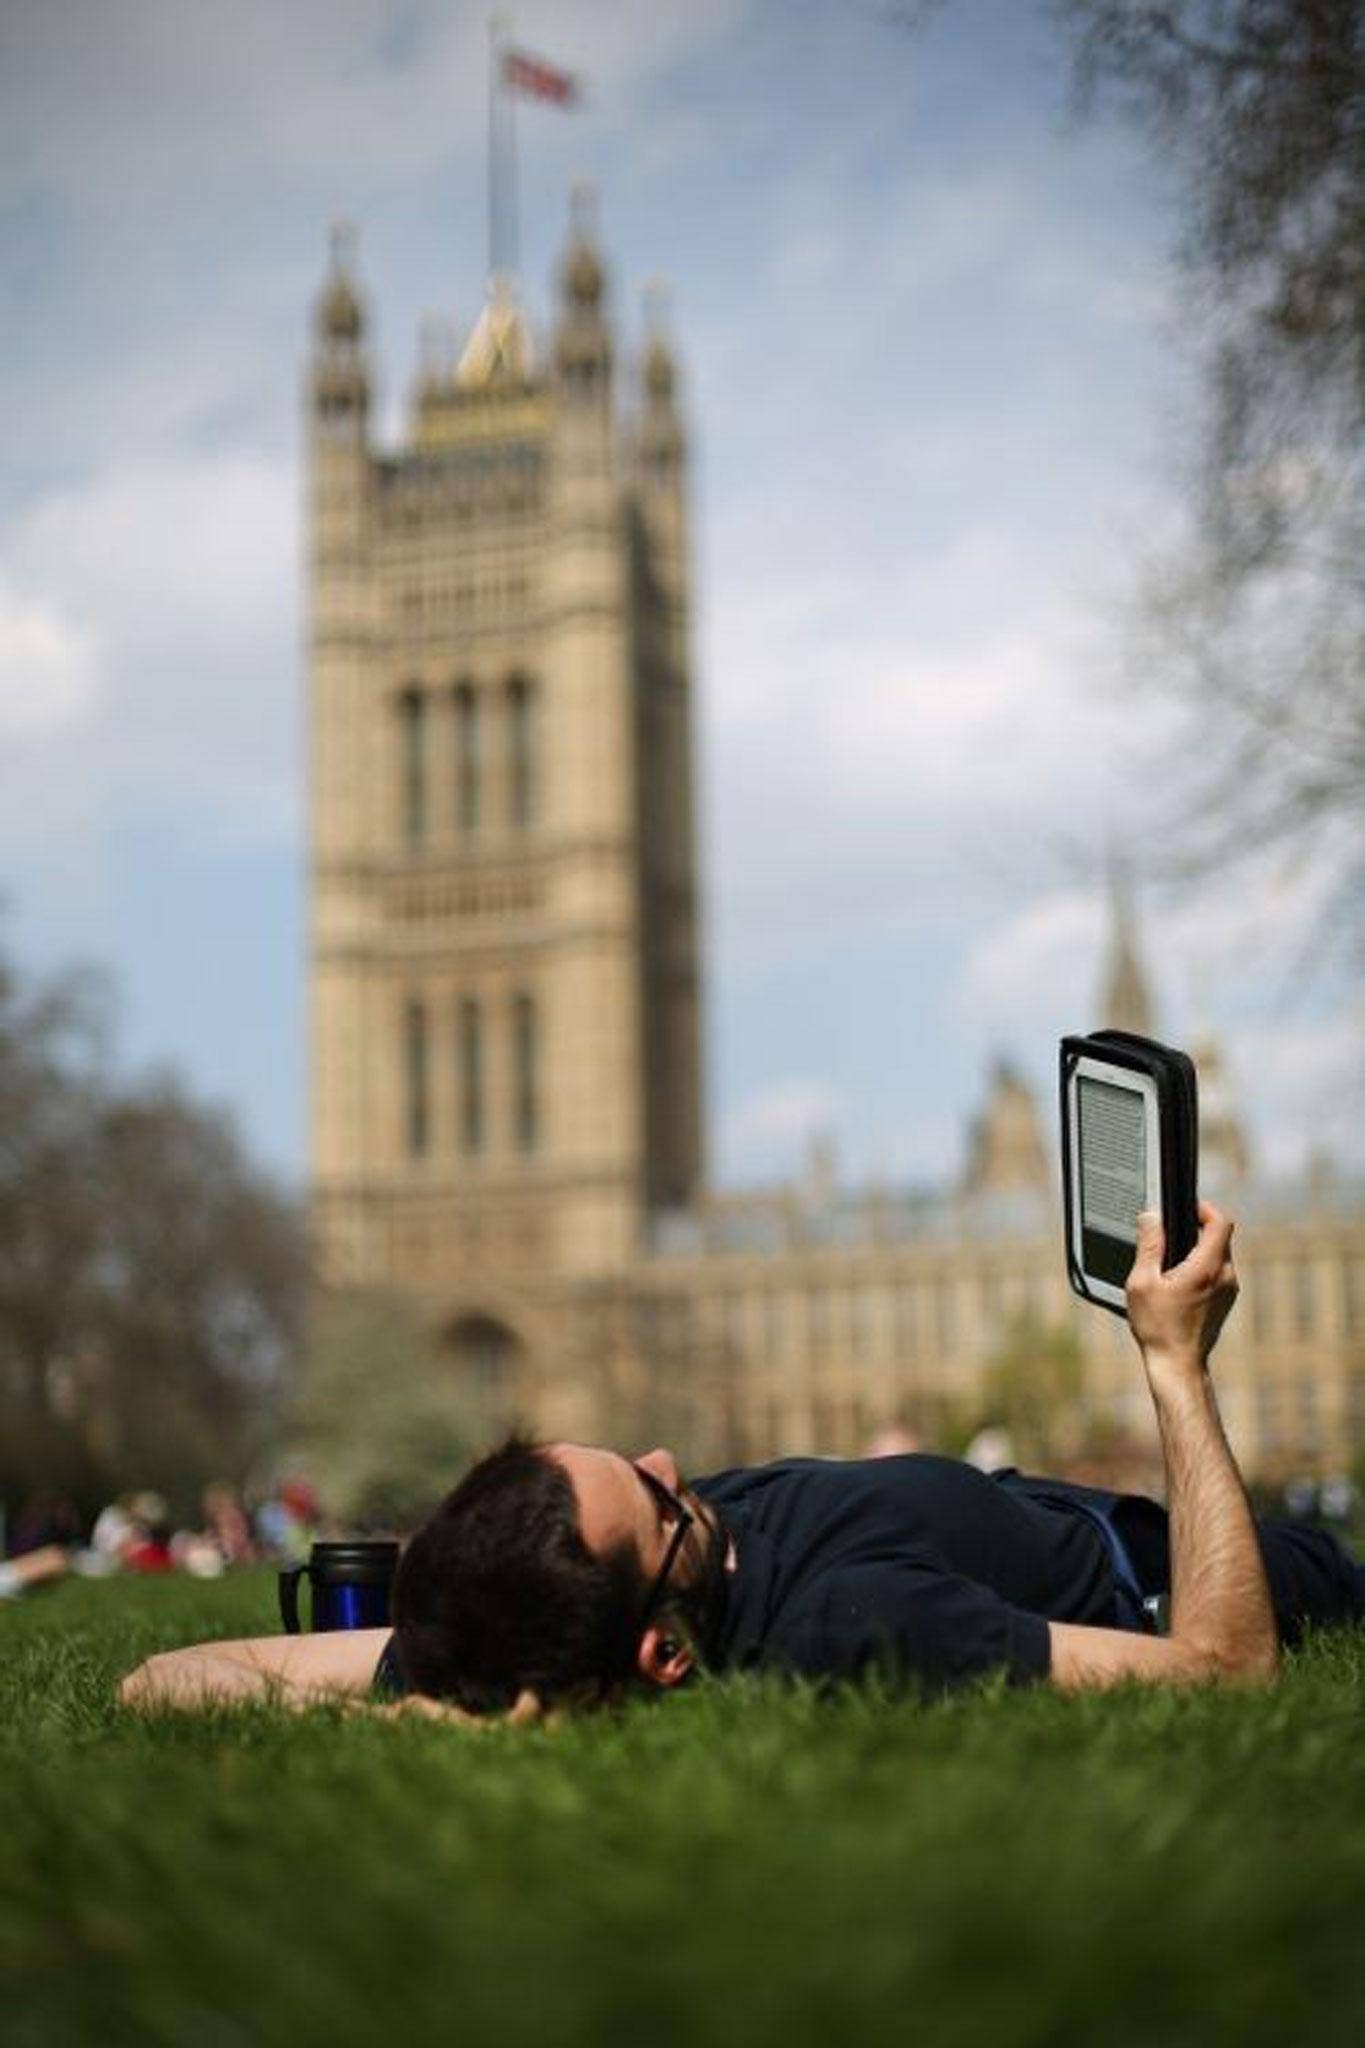 Relax, you have more rights: new proposals aim to protect consumers against faulty downloads